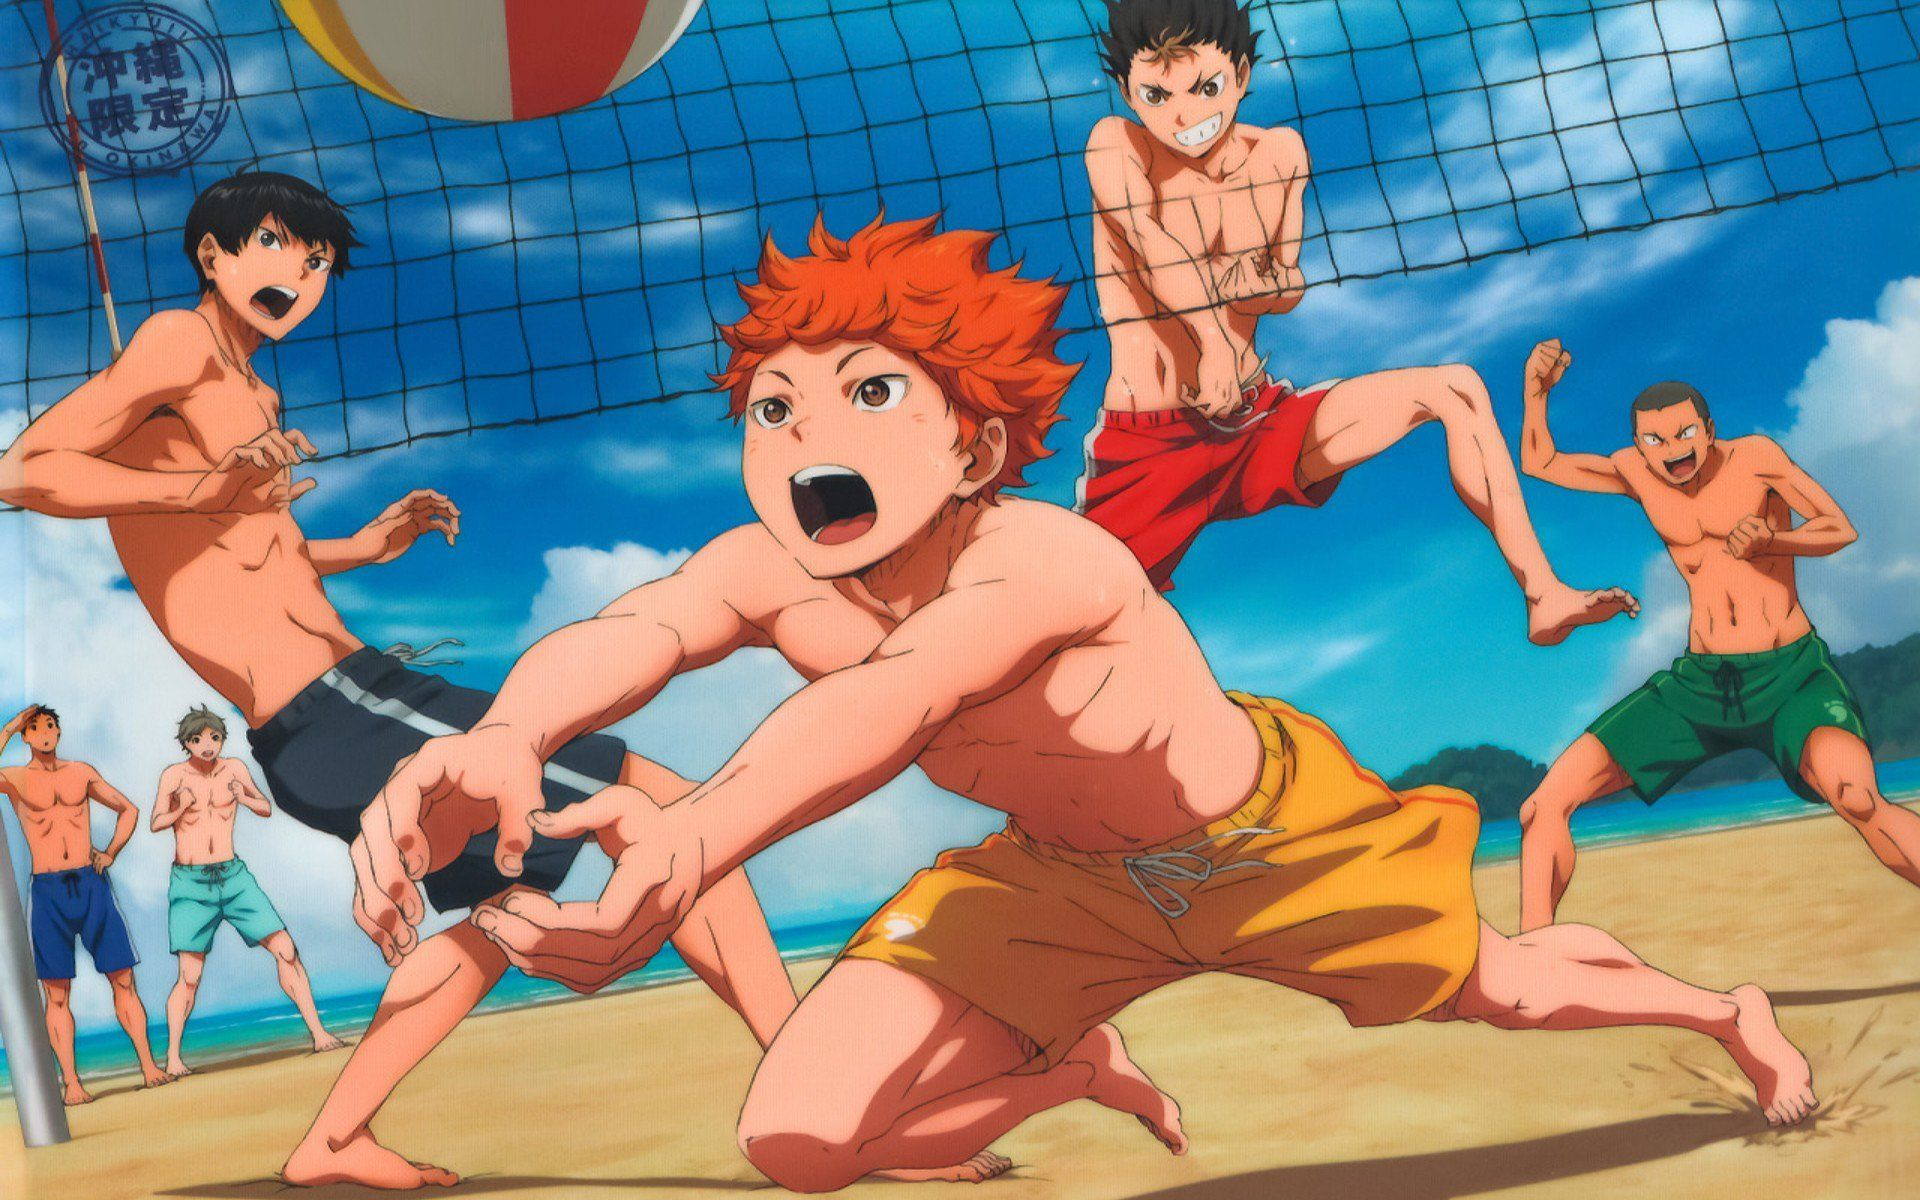 Olympic Games Haikyuu Beach Volleyball Haikyuu Beach Volleyball Beach Volleyball Hairstyles Beach Volleyball Pos In 2020 Haikyuu Karasuno Haikyuu Haikyuu Anime